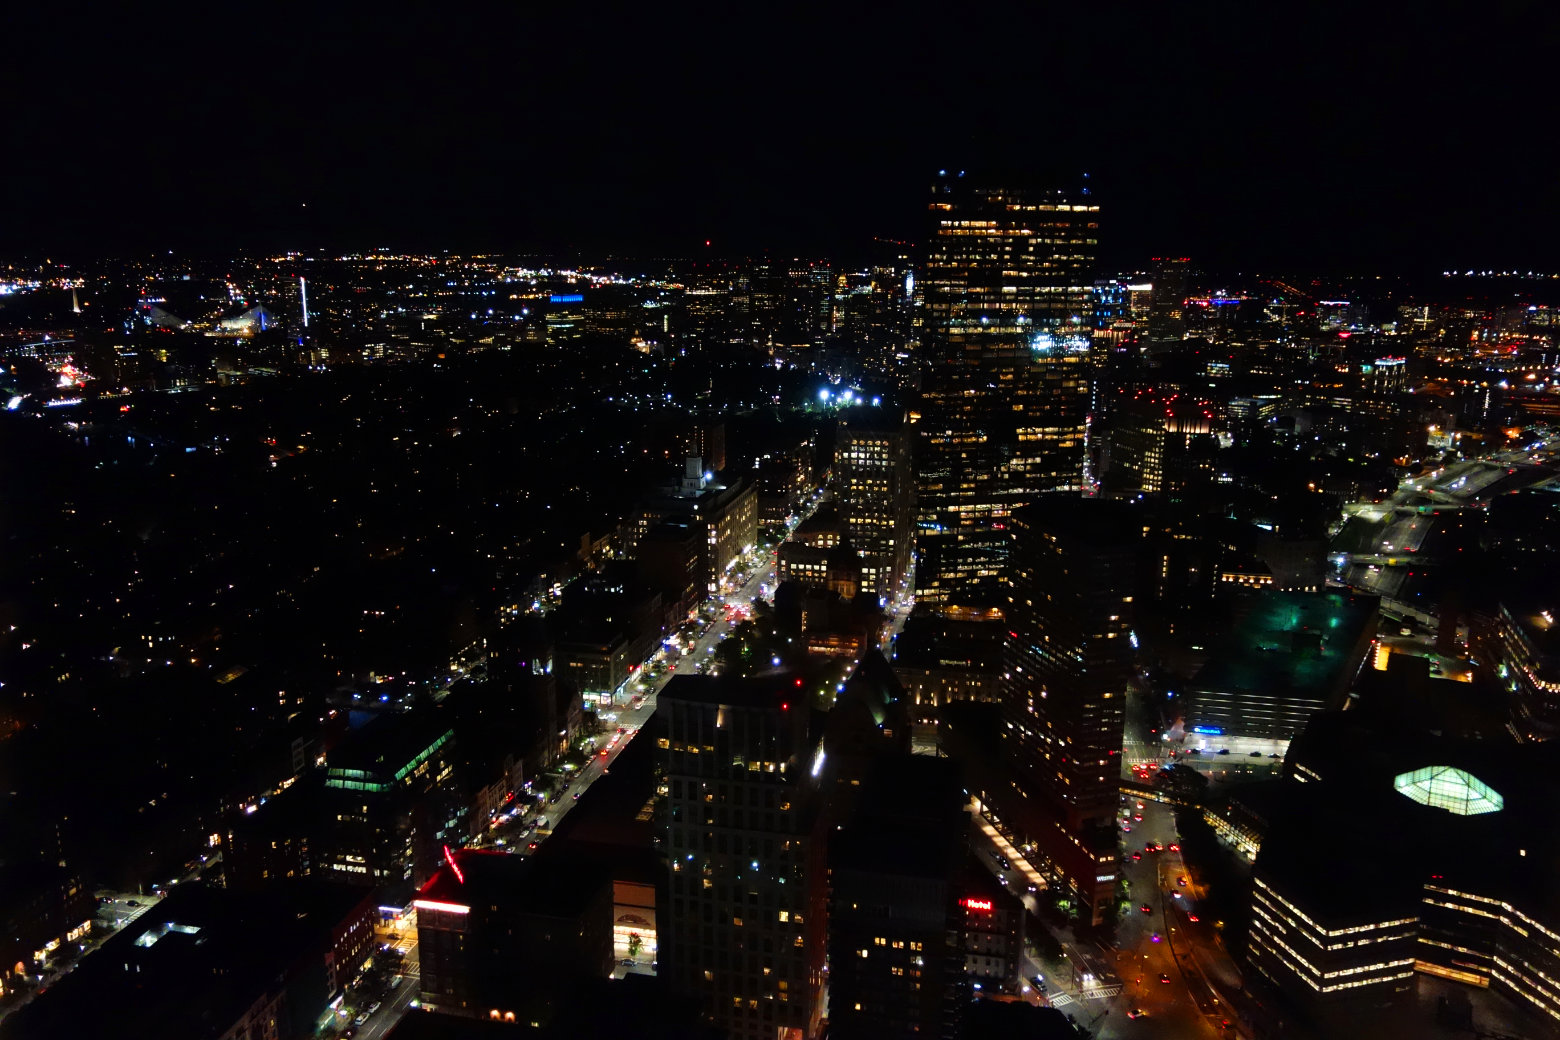 Boston Blick vom Prudential Center nachts